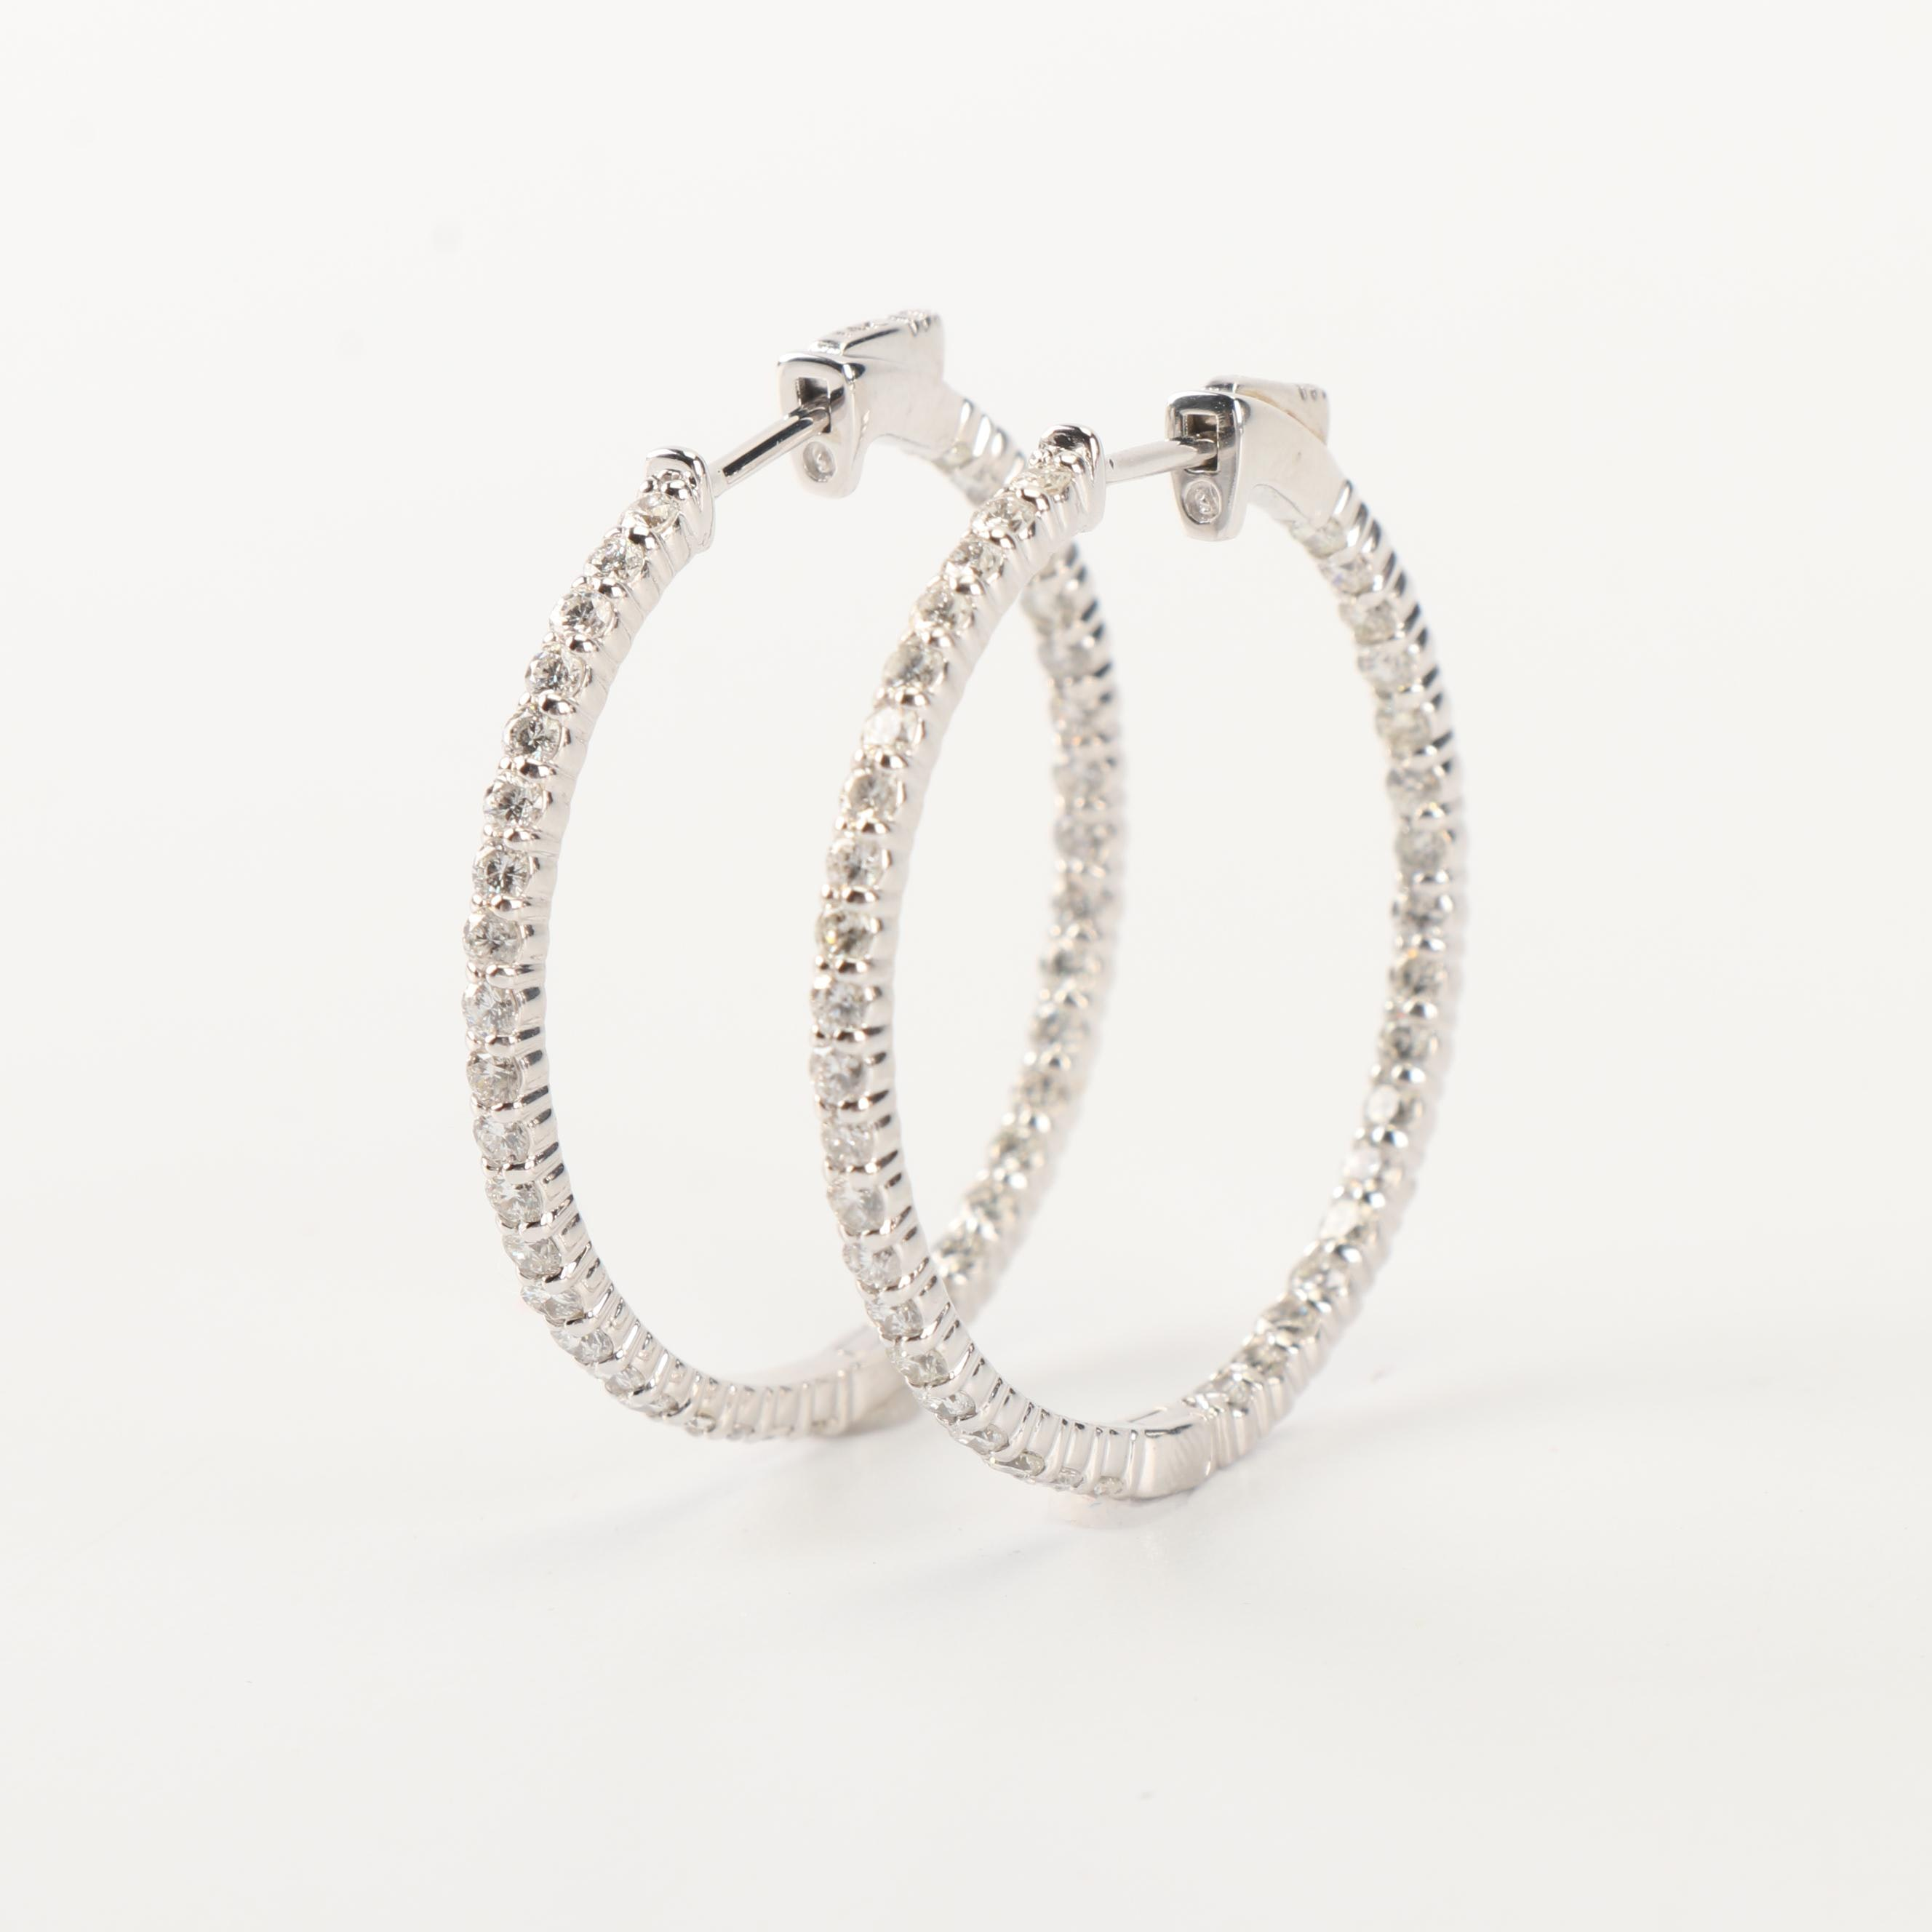 14K White Gold 2.45 CTW Diamond Inside Out Hoop Earrings